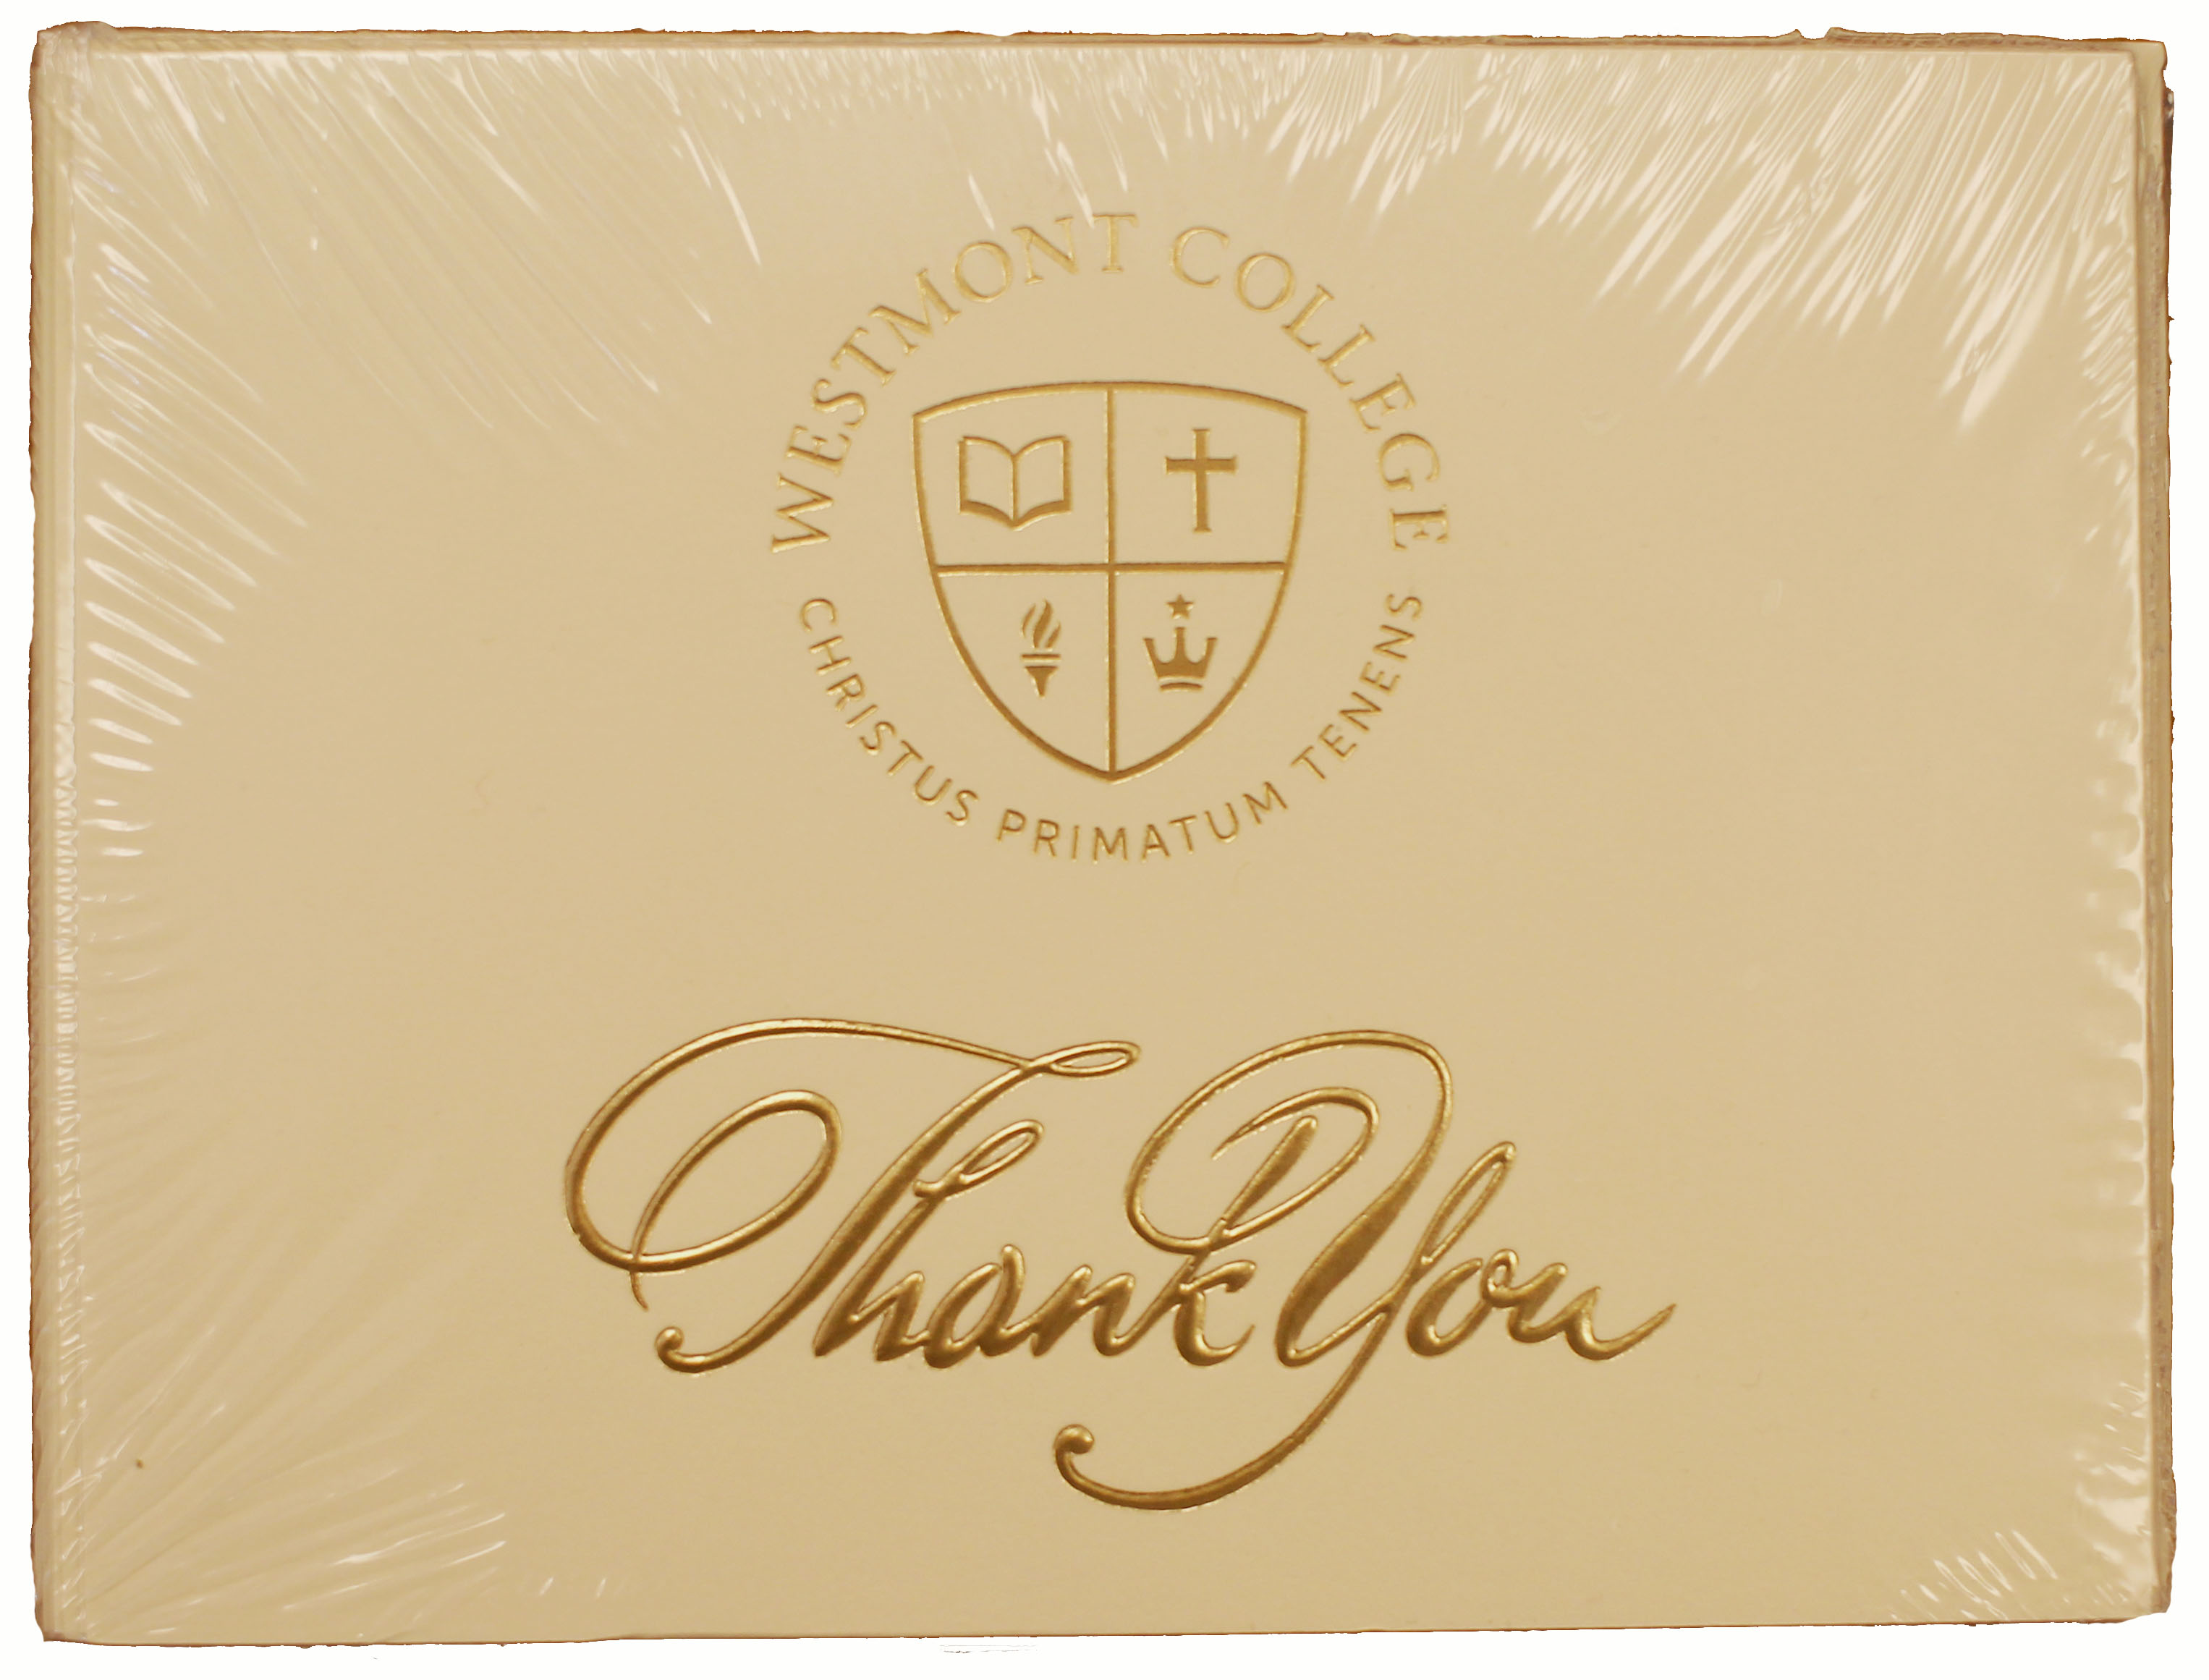 Image for the Westmont College Thank You Cards (10) product